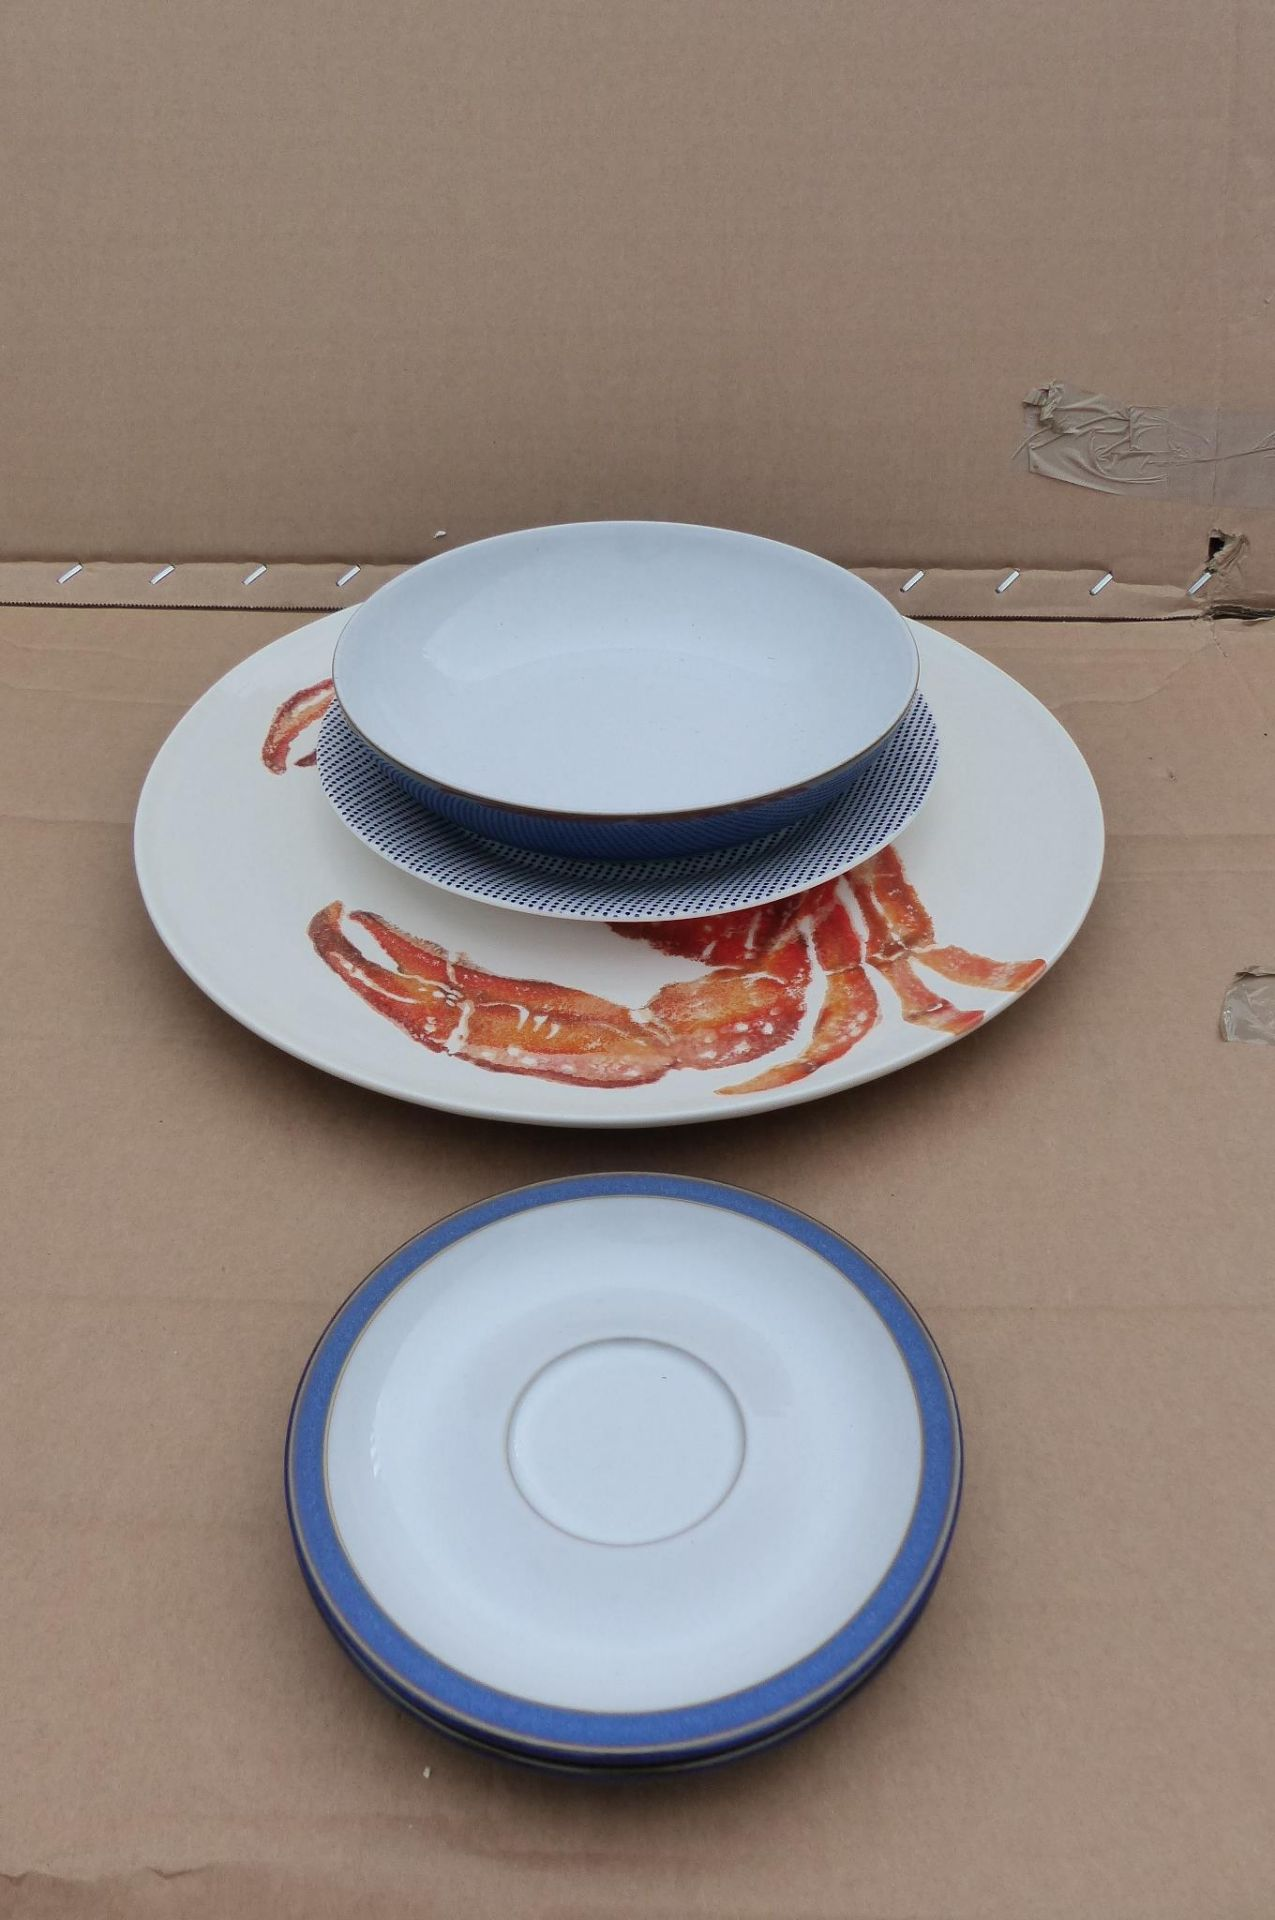 5 items to include large serving platter and Denby bowl and saucers